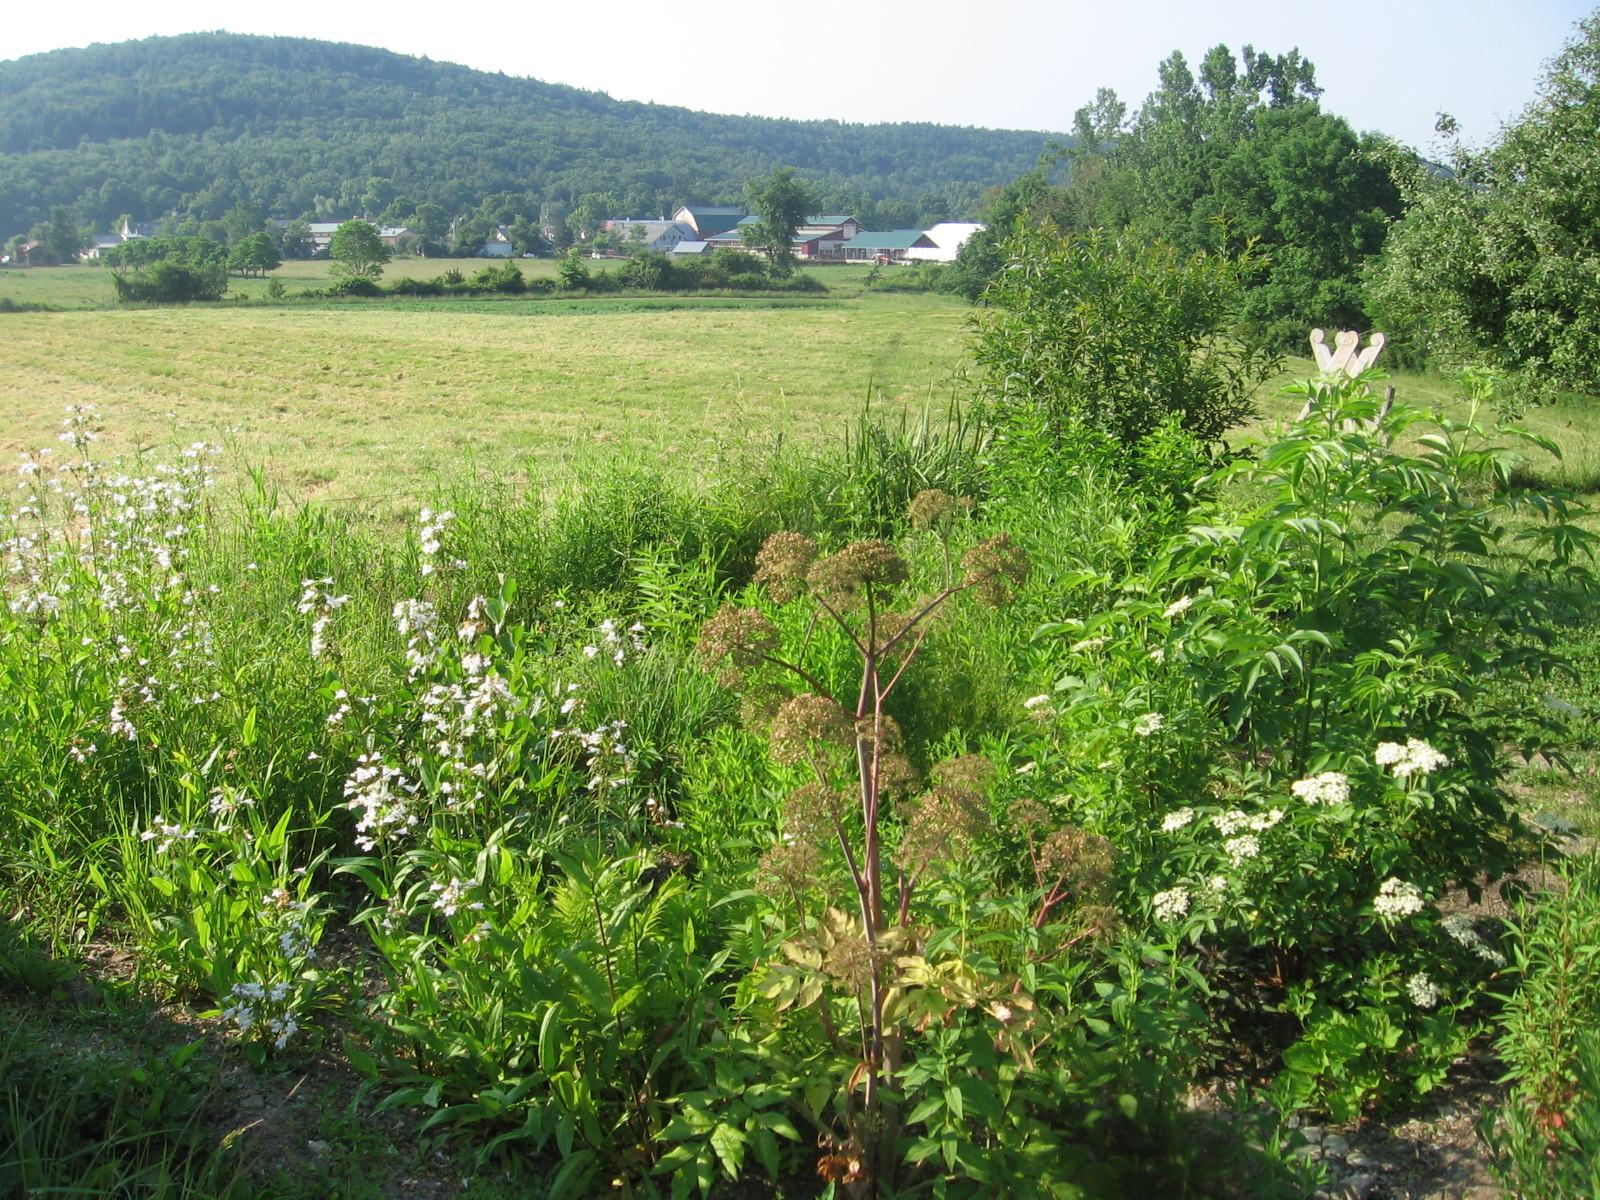 Raingarden in June 2012